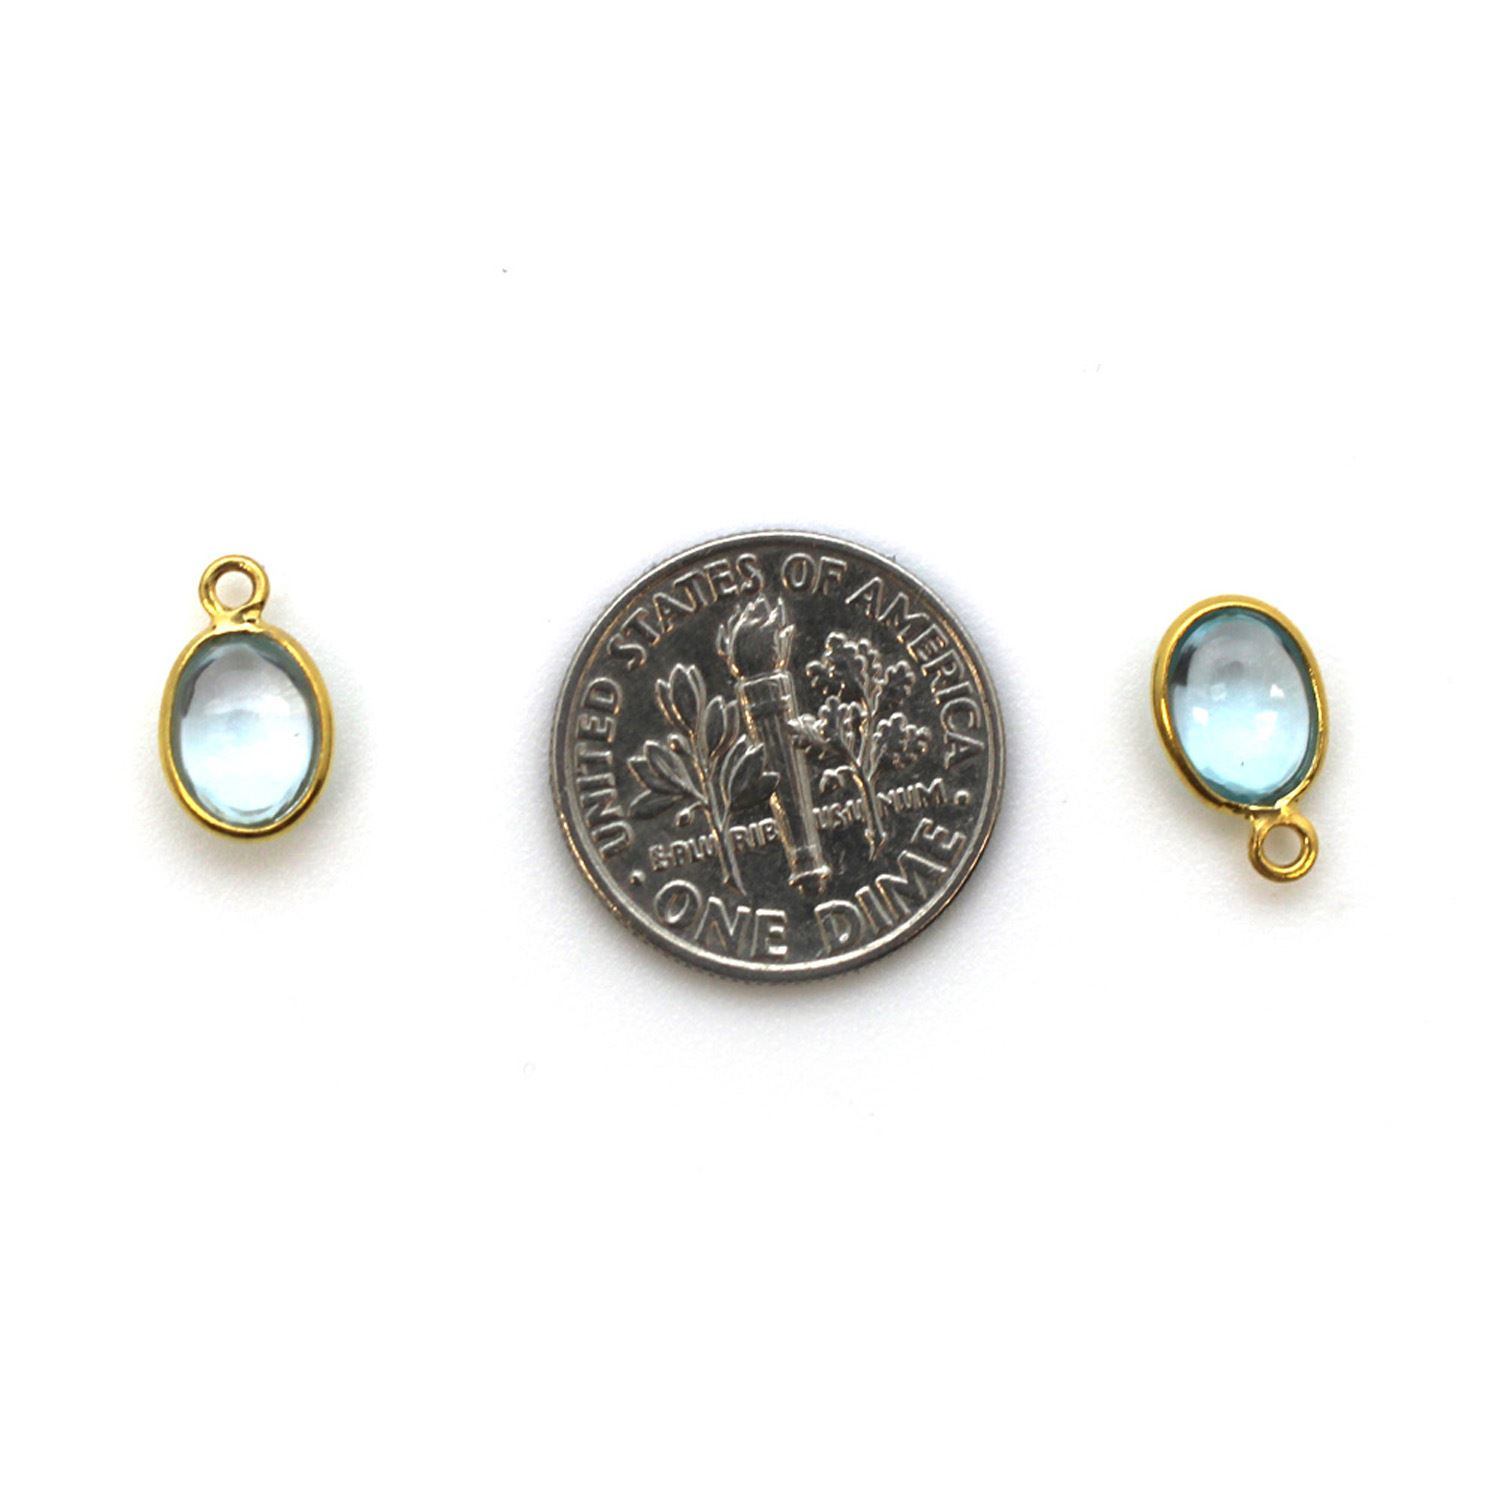 Bezel Charm Pendant - Gold Plated Silver Charm - Natural Sky Blue Topaz -Tiny Oval Shape